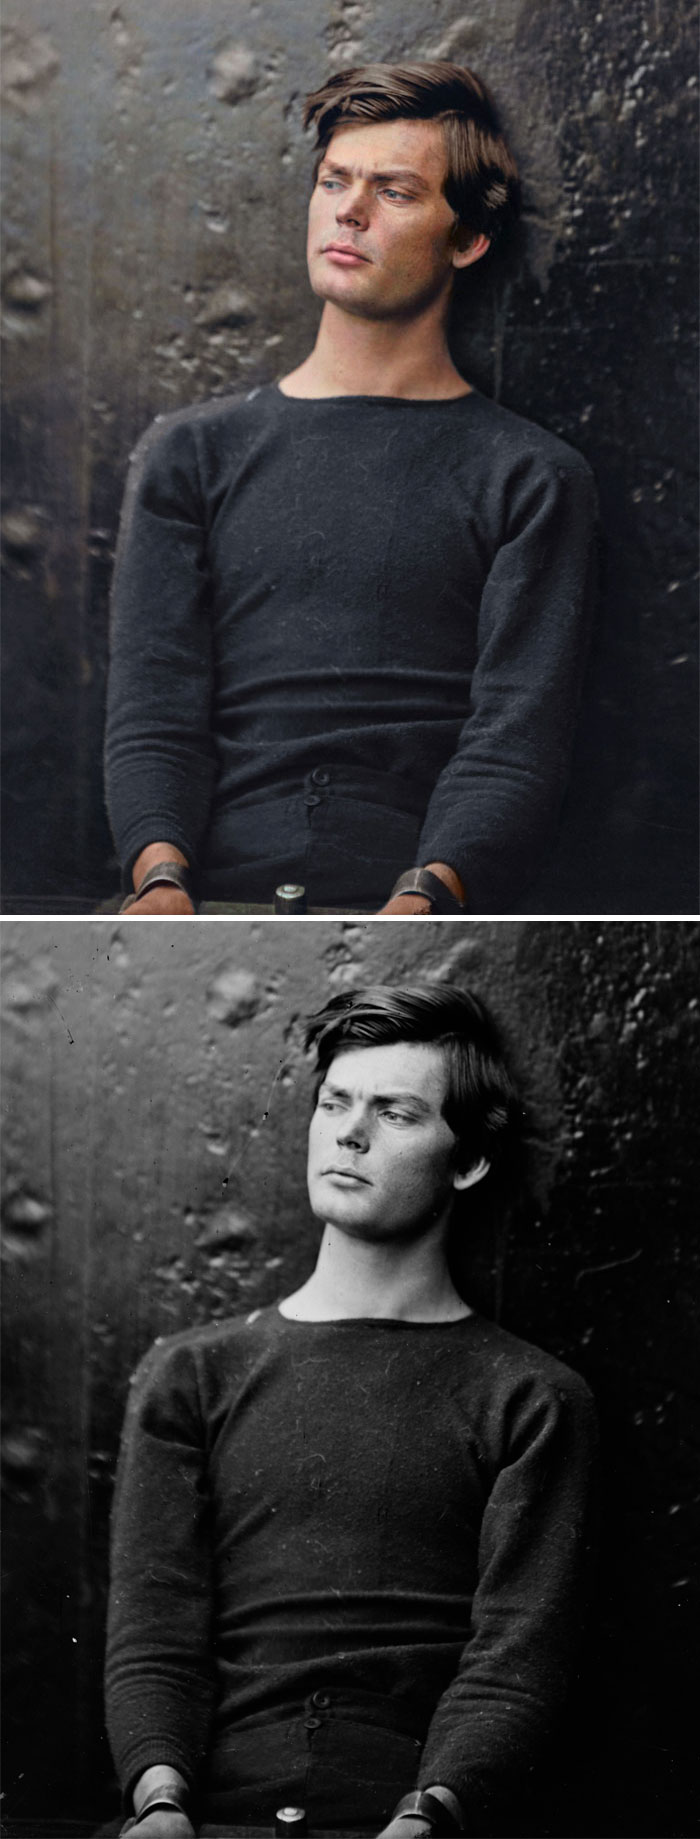 Lewis Powell. He Was A Conspirator With John Wilkes Booth, Who Assassinated President Abraham Lincoln